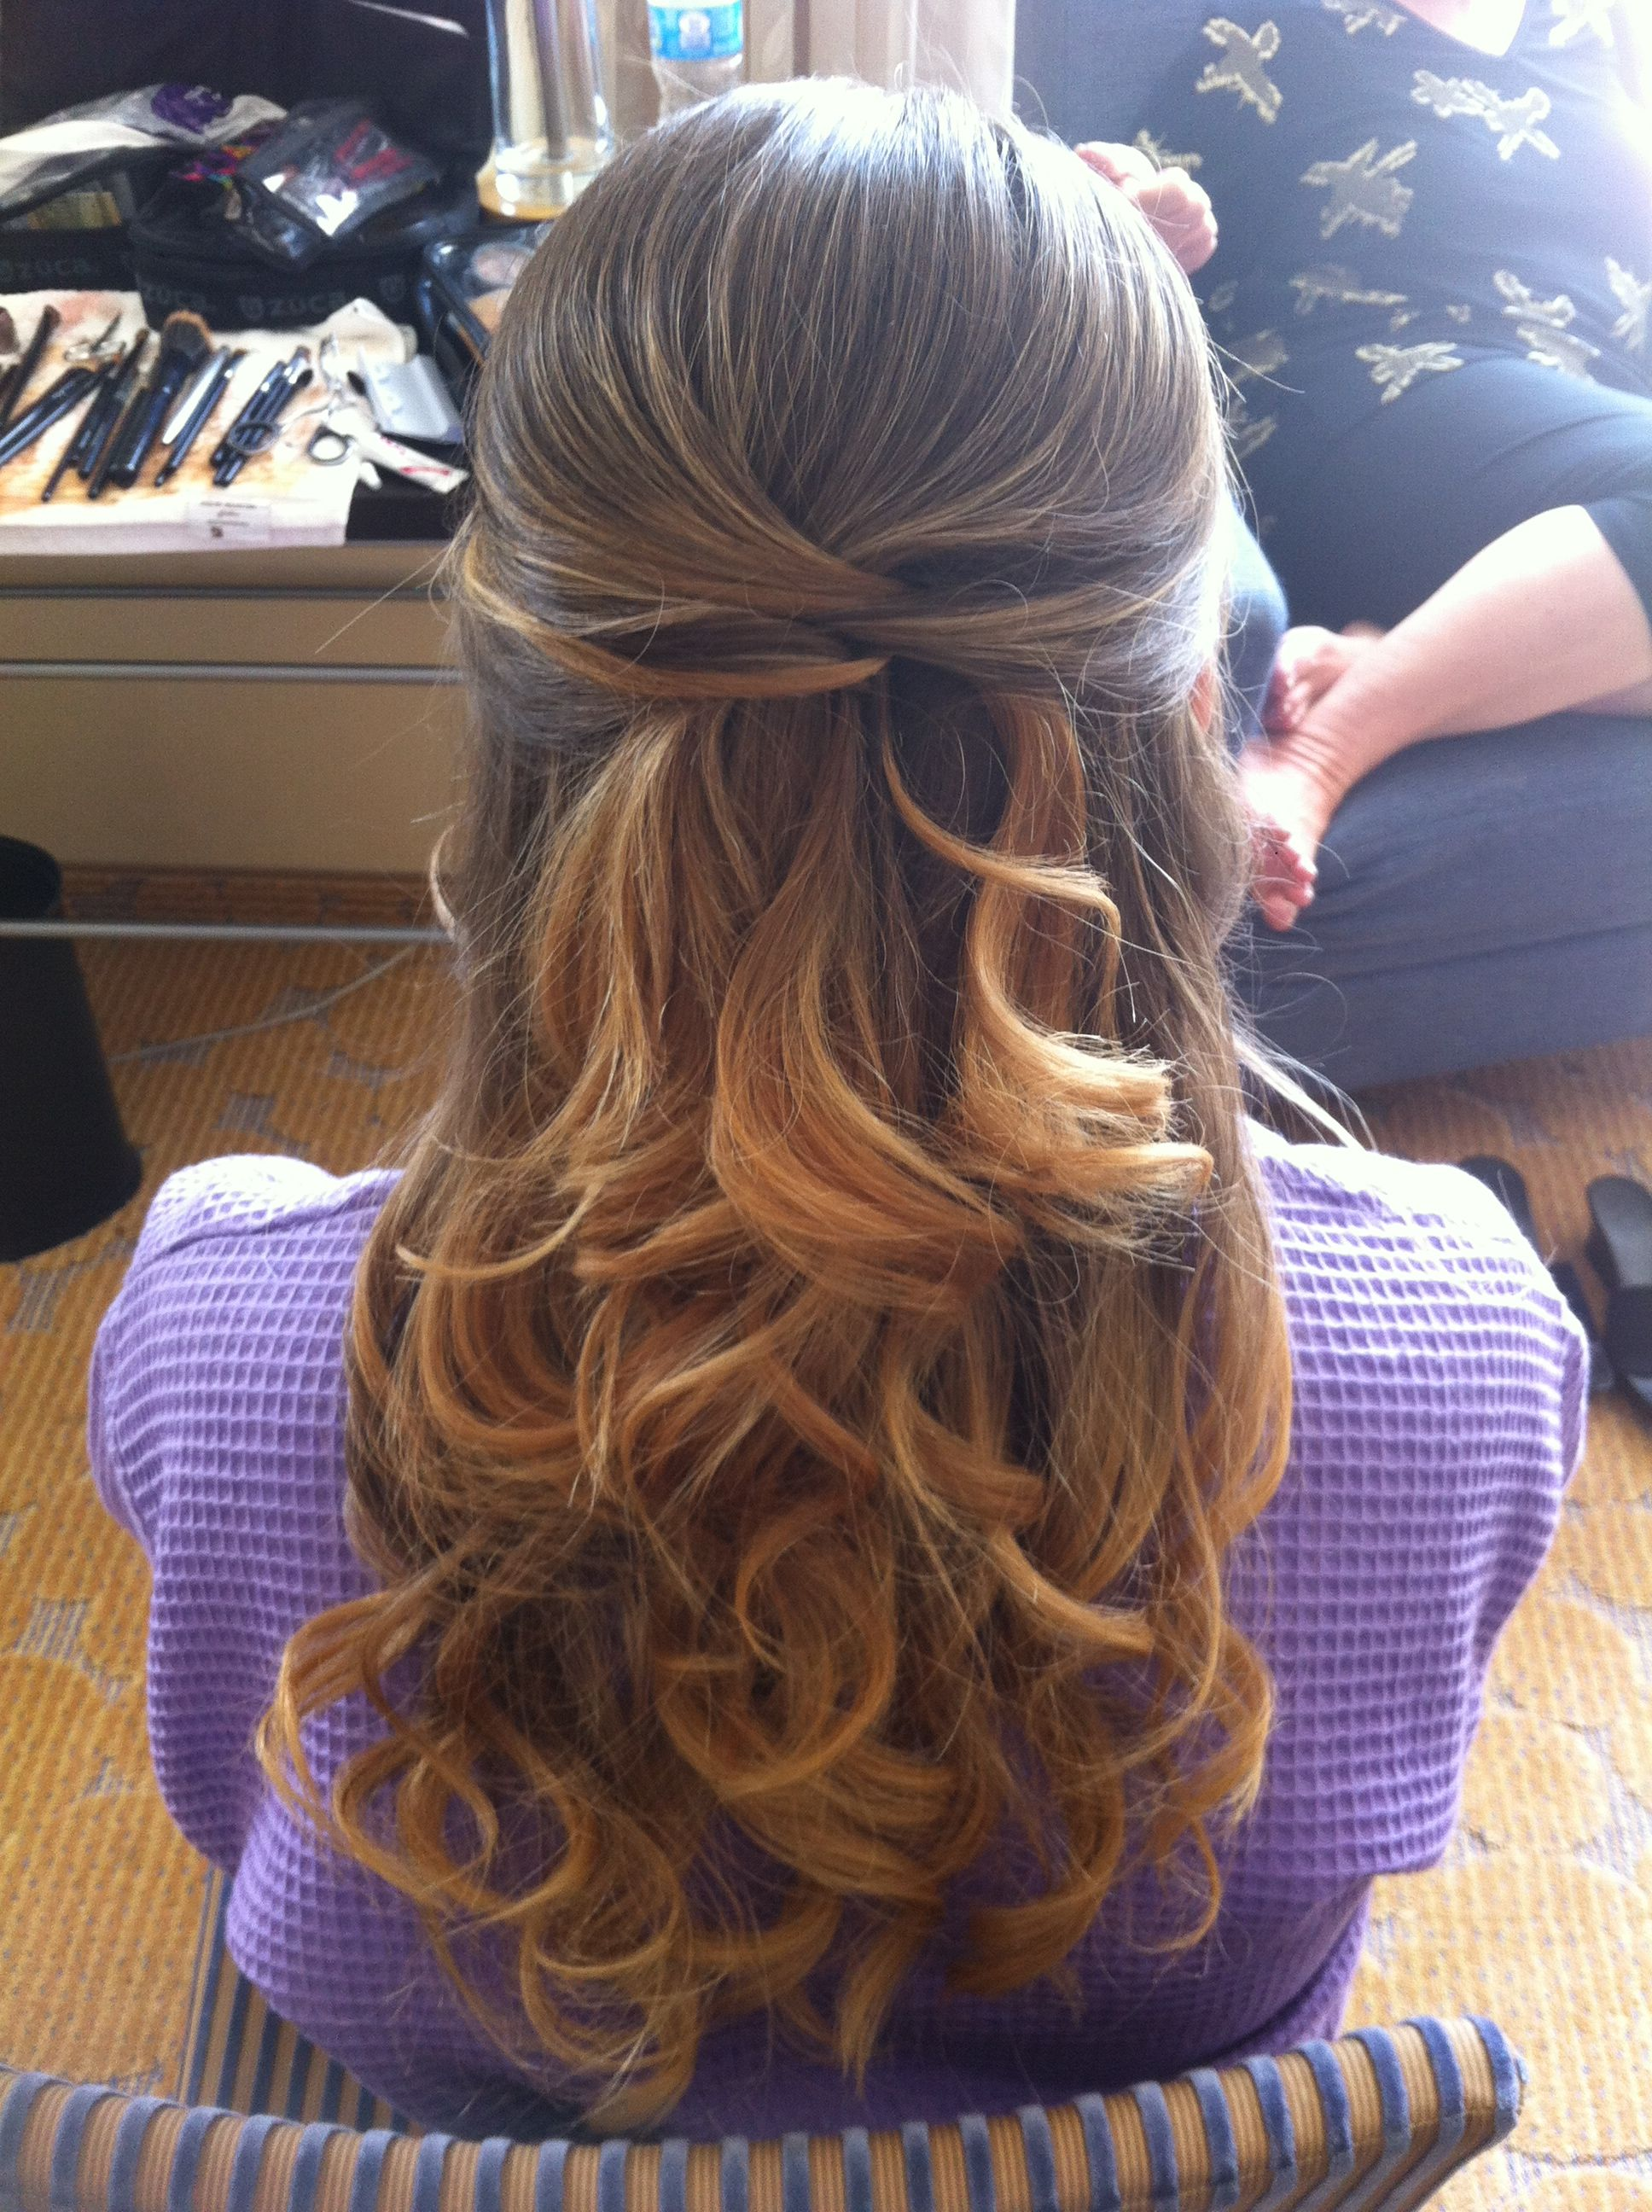 bridal hair, vintage waves, soft curls, prom, wedding updo